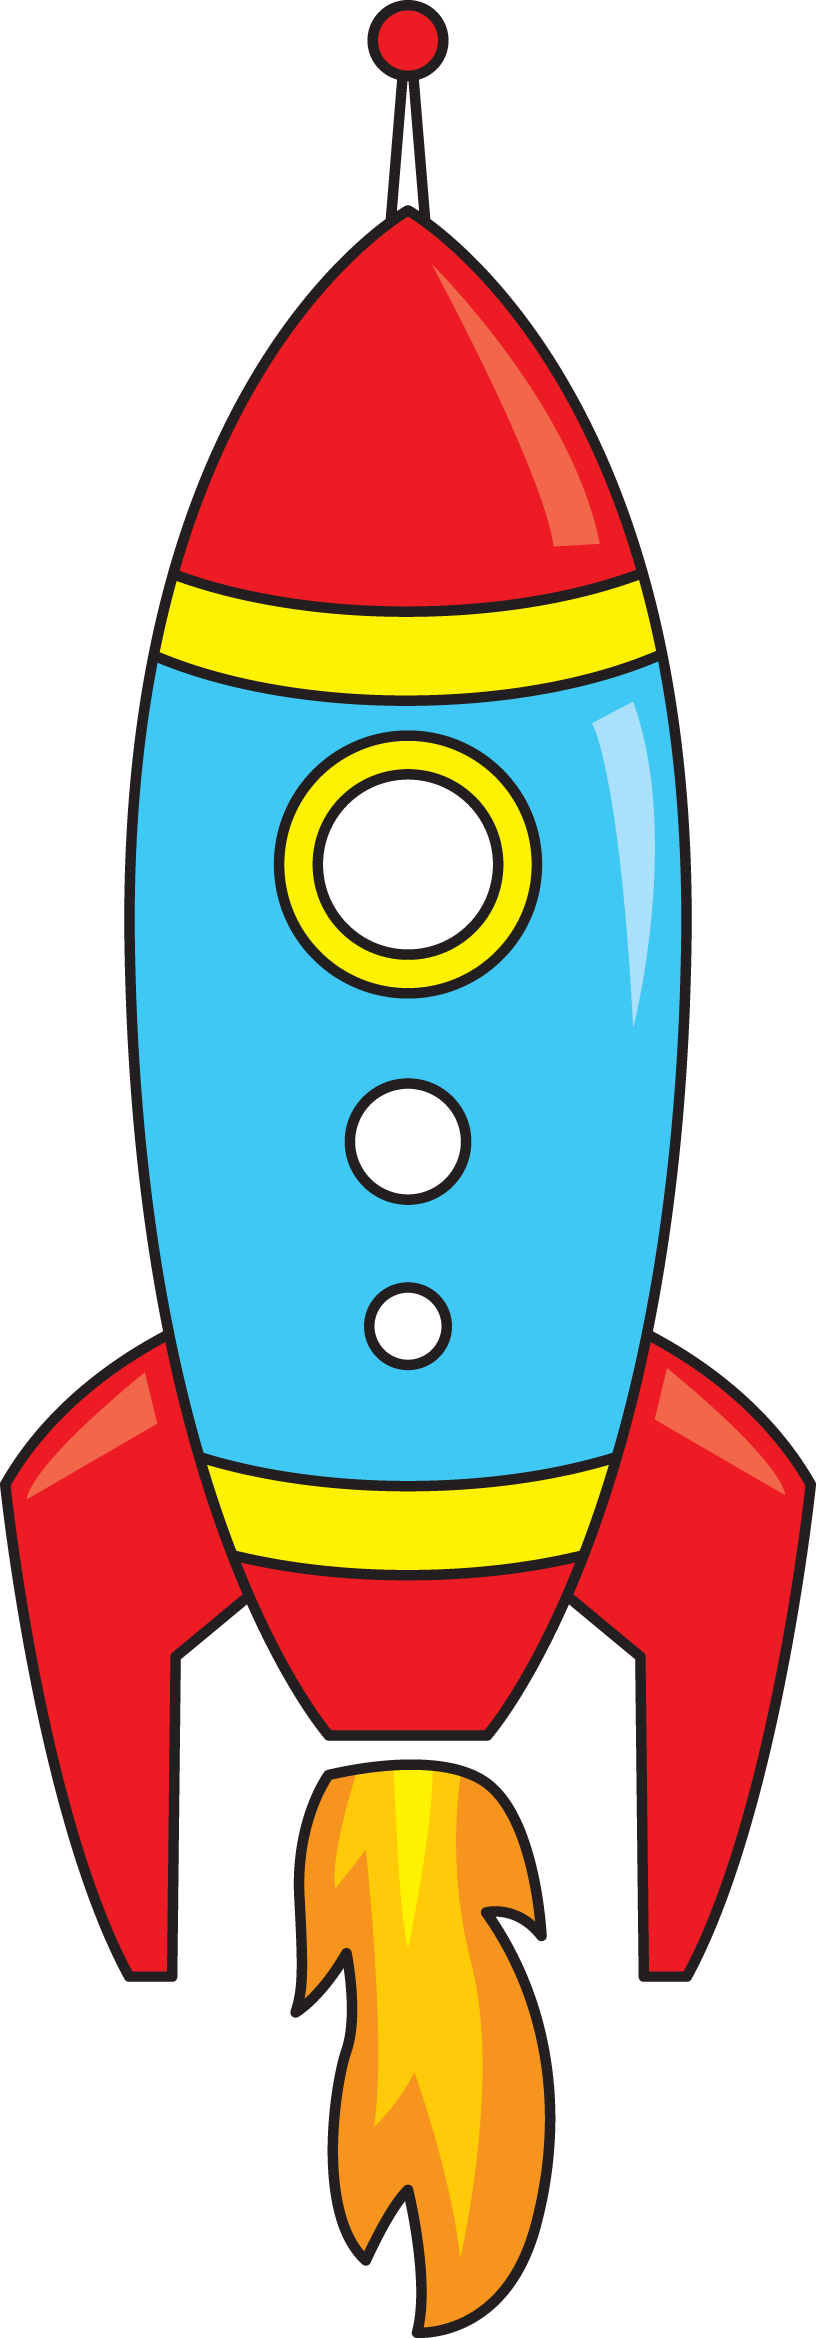 Technology clipart space technology. Free images for clip